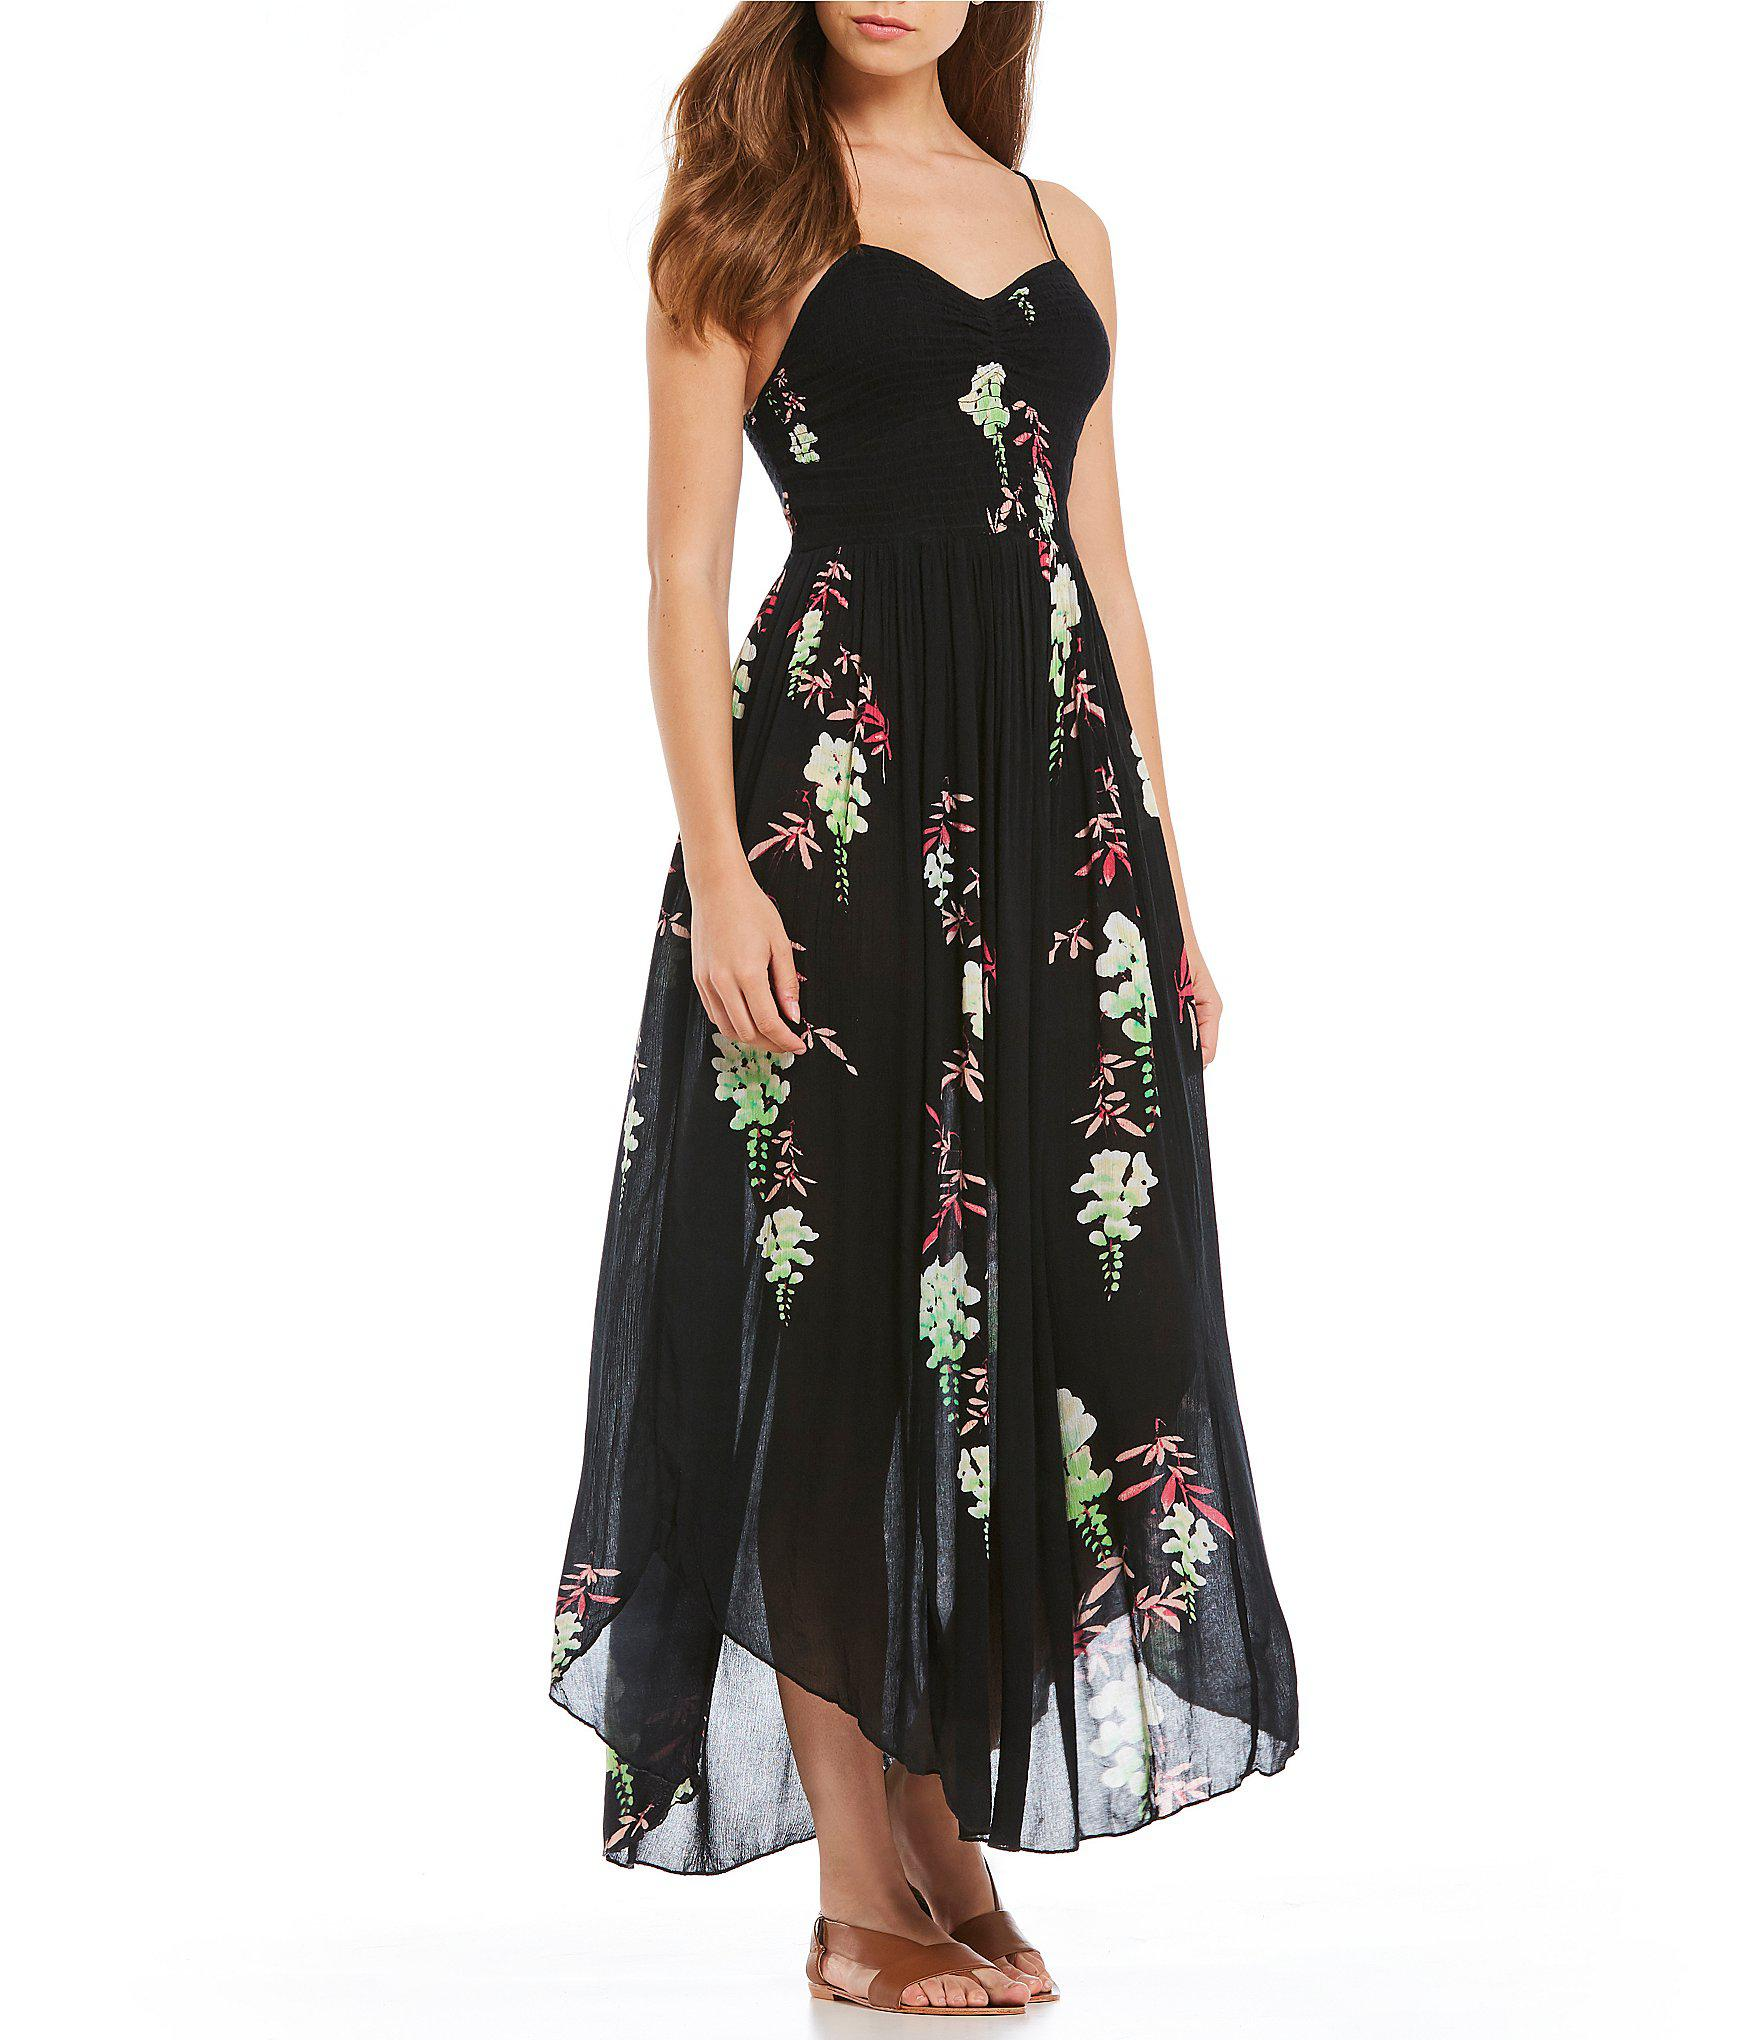 64bb154006222 Free People Beau Smocked Floral Print Slip Maxi Dress in Black - Lyst